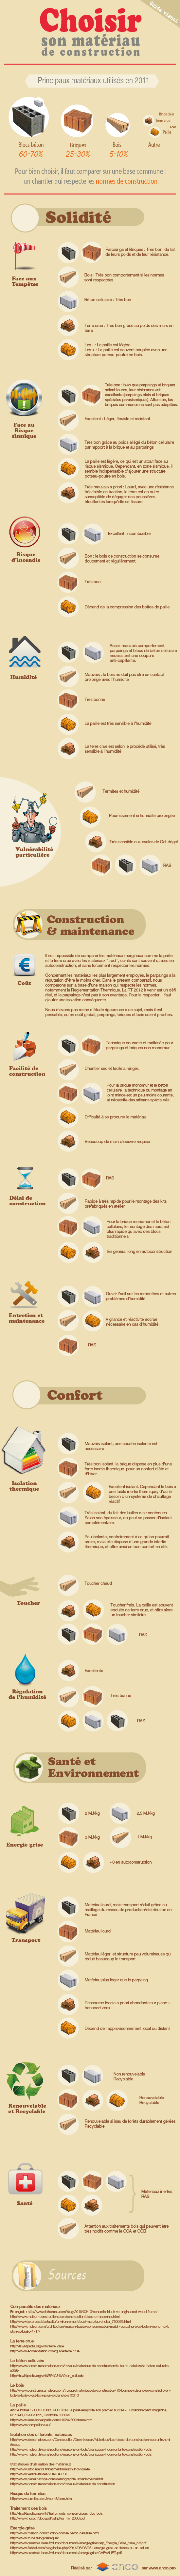 comparatif visuel materiau de construction